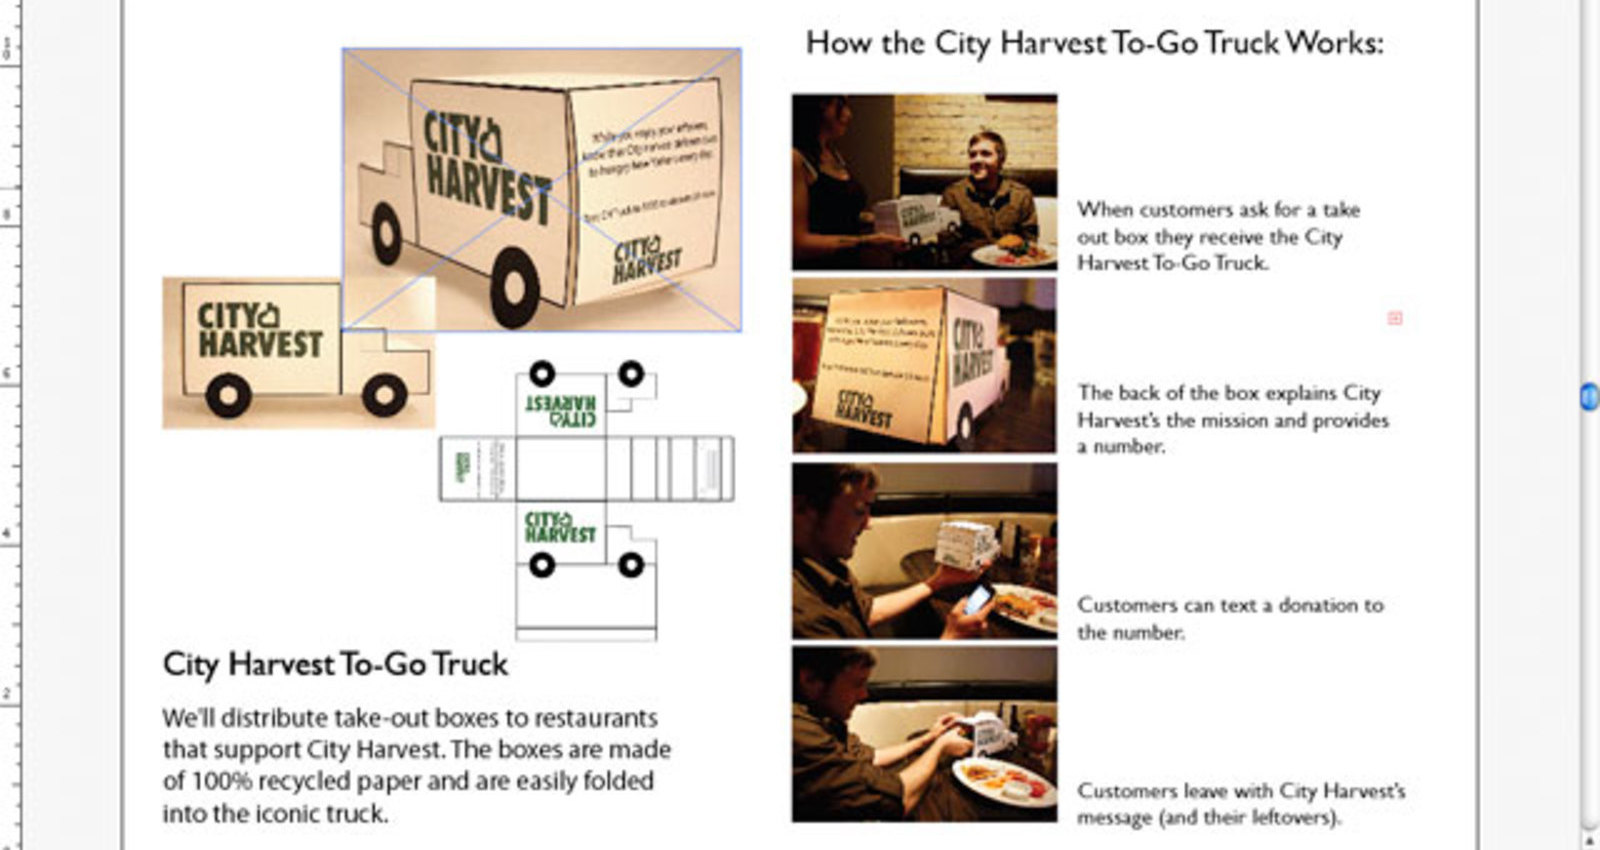 City Harvest To-Go Truck